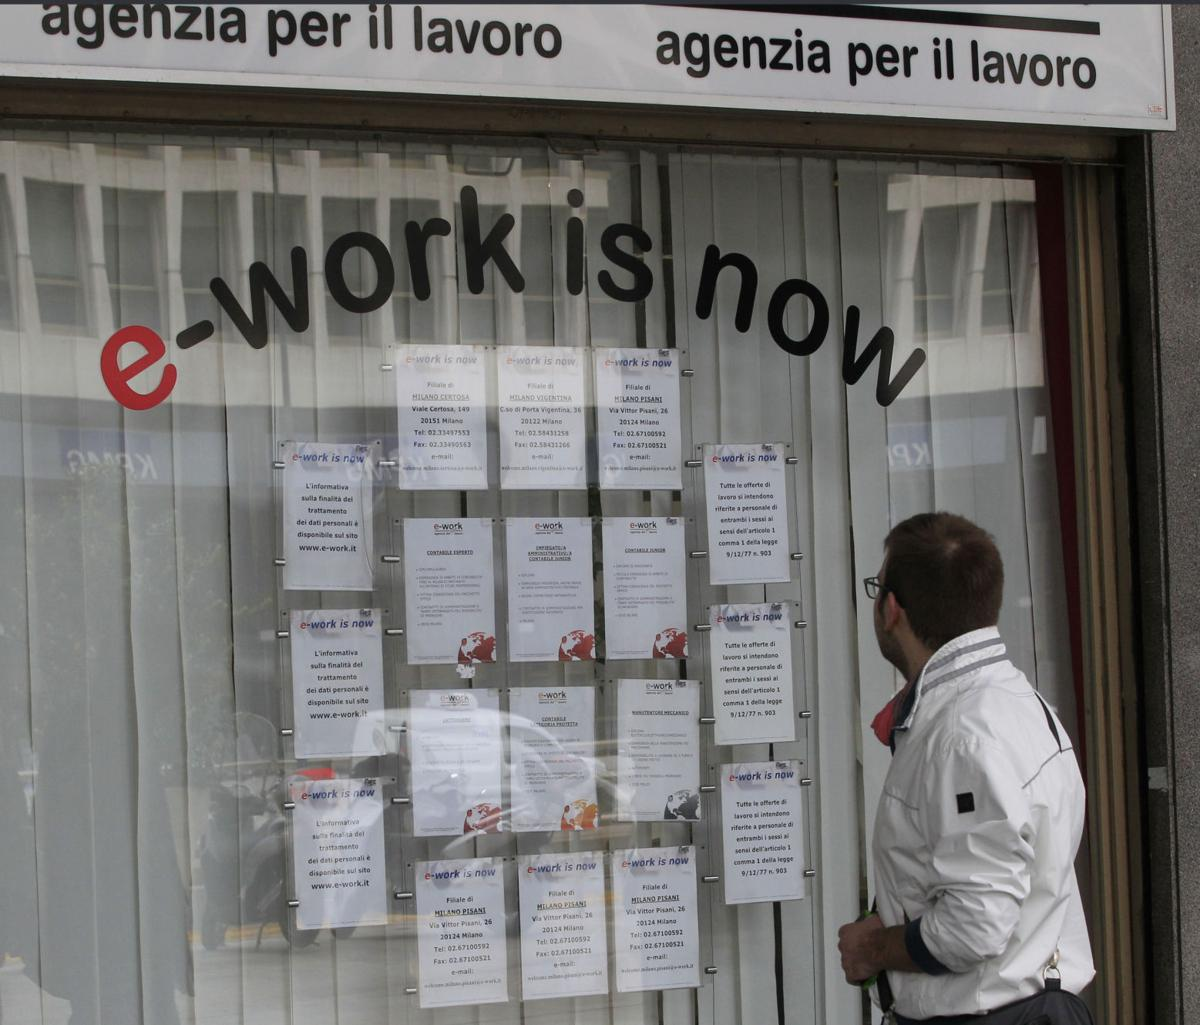 As Europe struggles, young job-seekers suffer most